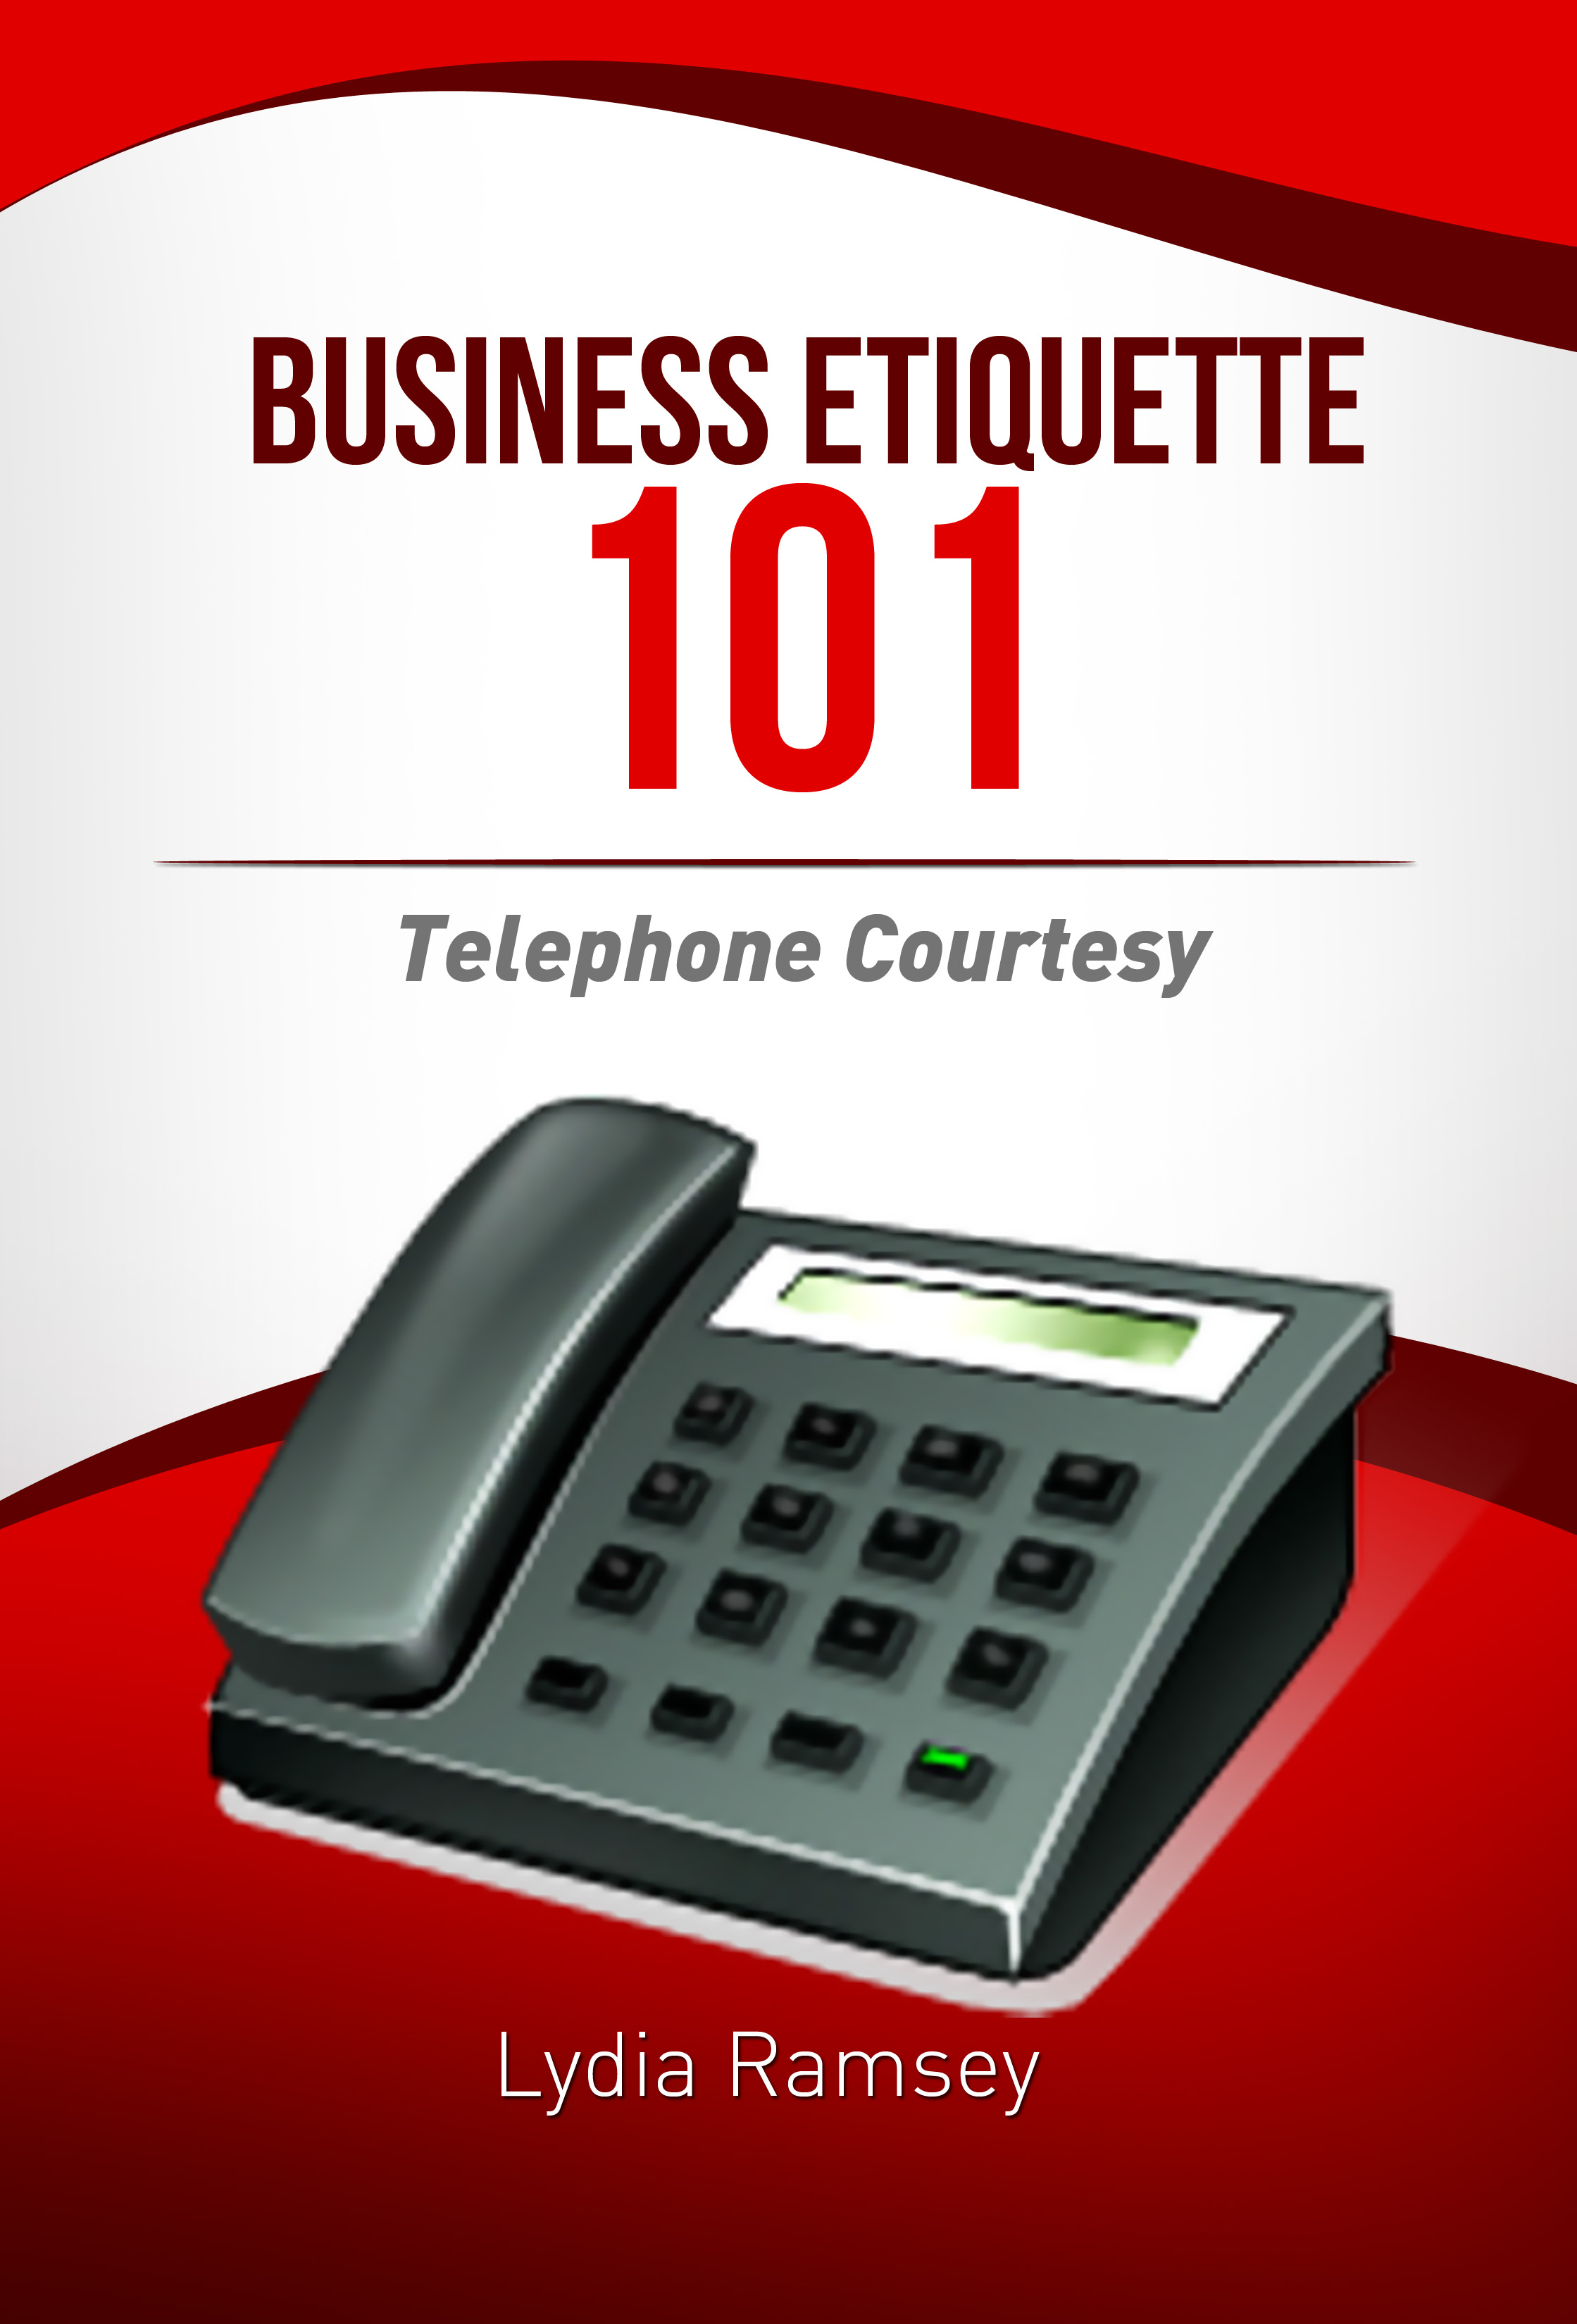 Business Etiquette 101 – Telephone Courtesy - Ramsey's Rules